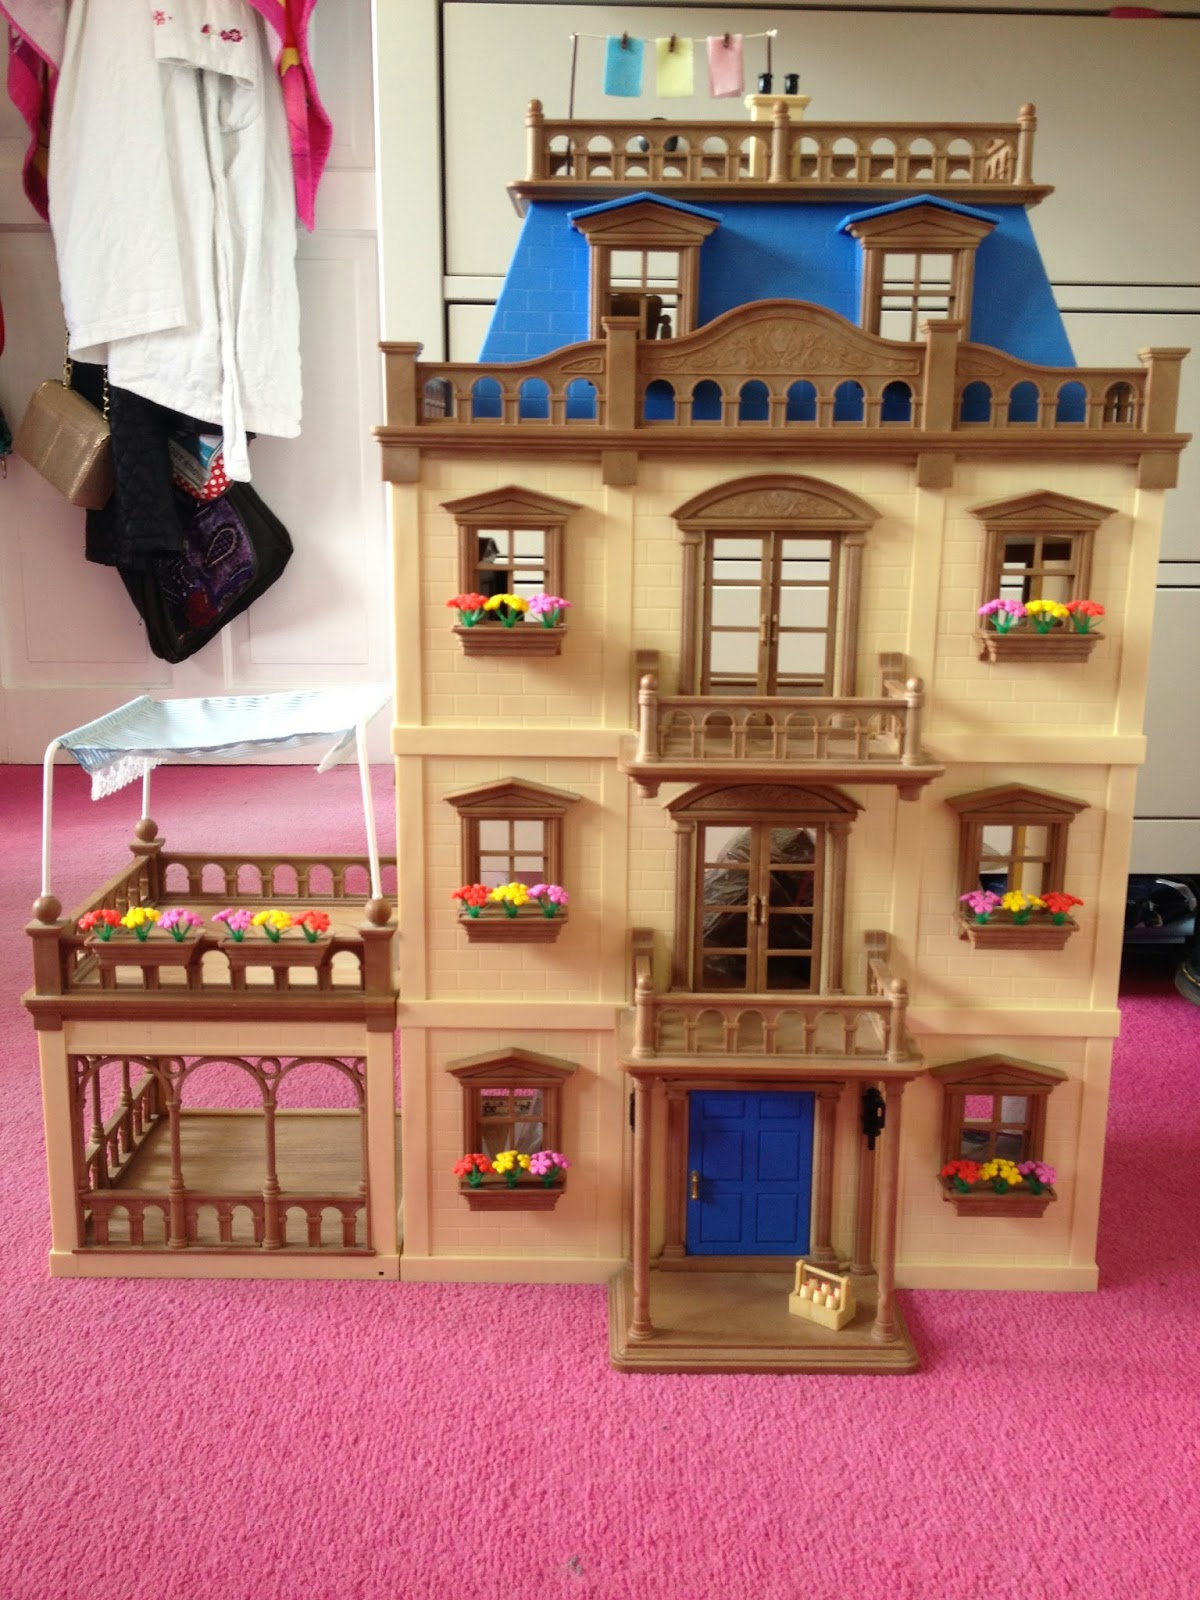 Lily 39 s sylvanian families blog vintage mansion nursery for A mansion house